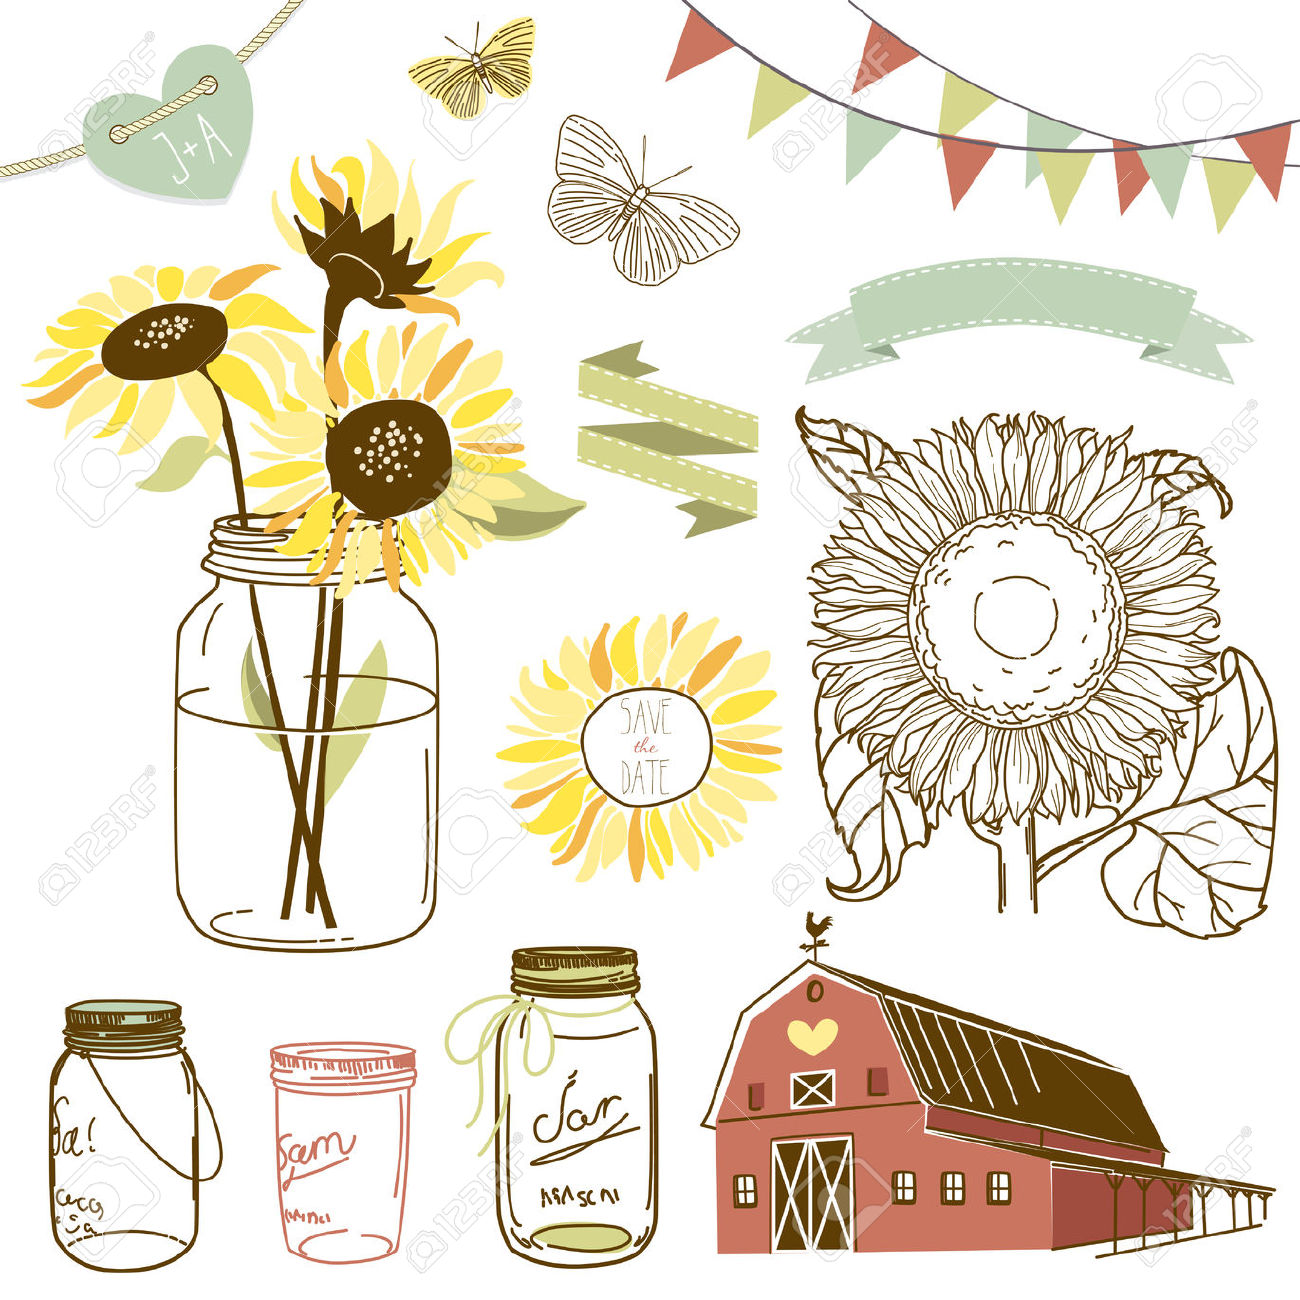 Rustic clipart clipart black and white stock Free Rustic Line Cliparts, Download Free Clip Art, Free Clip ... clipart black and white stock